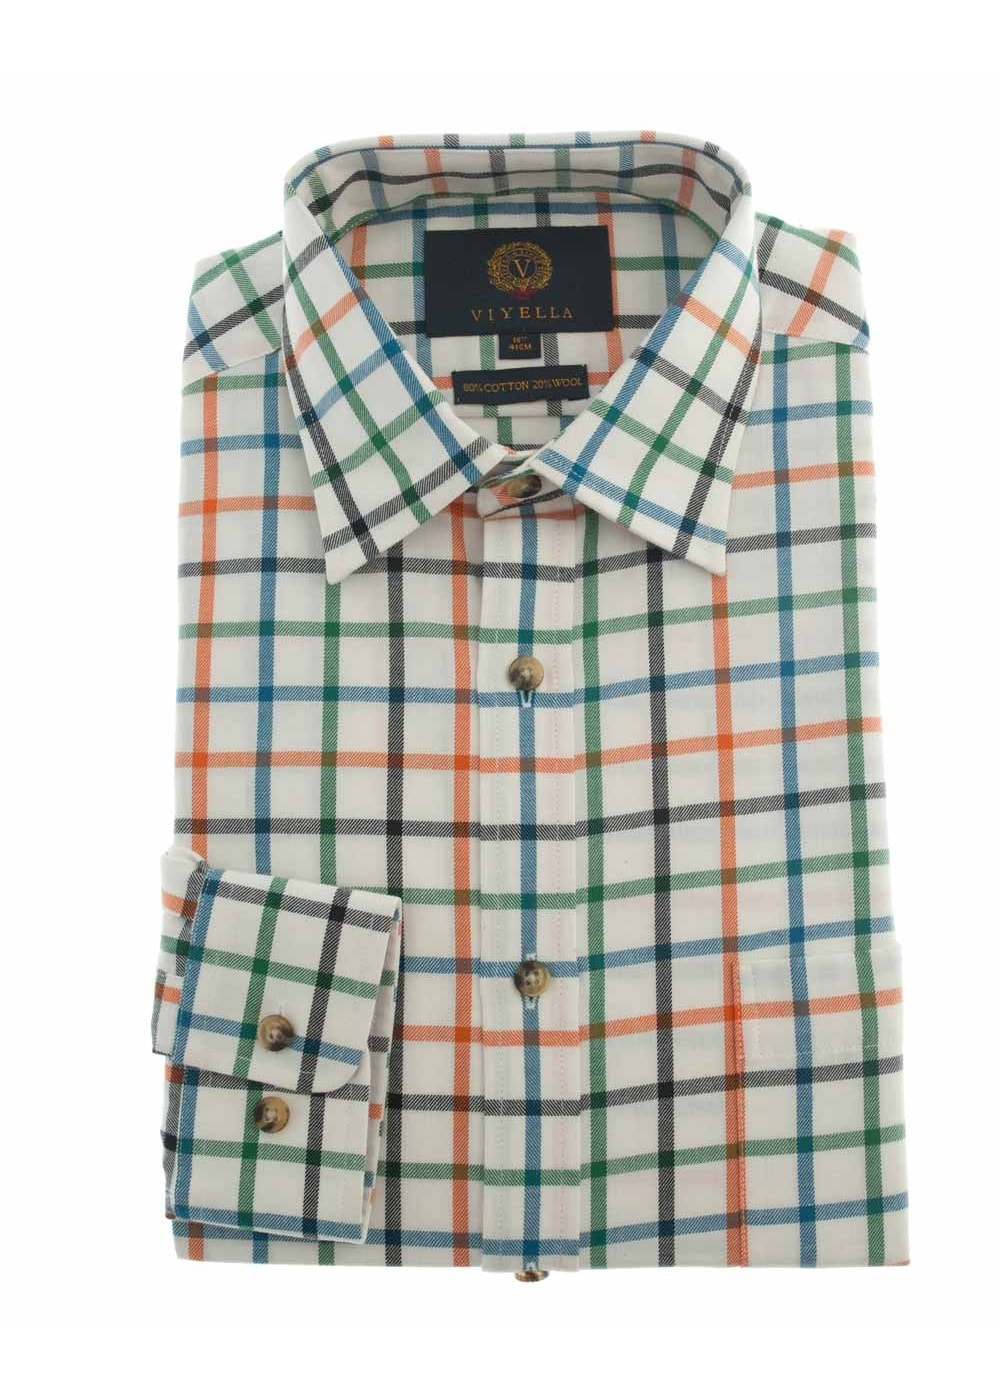 Viyella Shirts Usa Off 79 Free Shipping